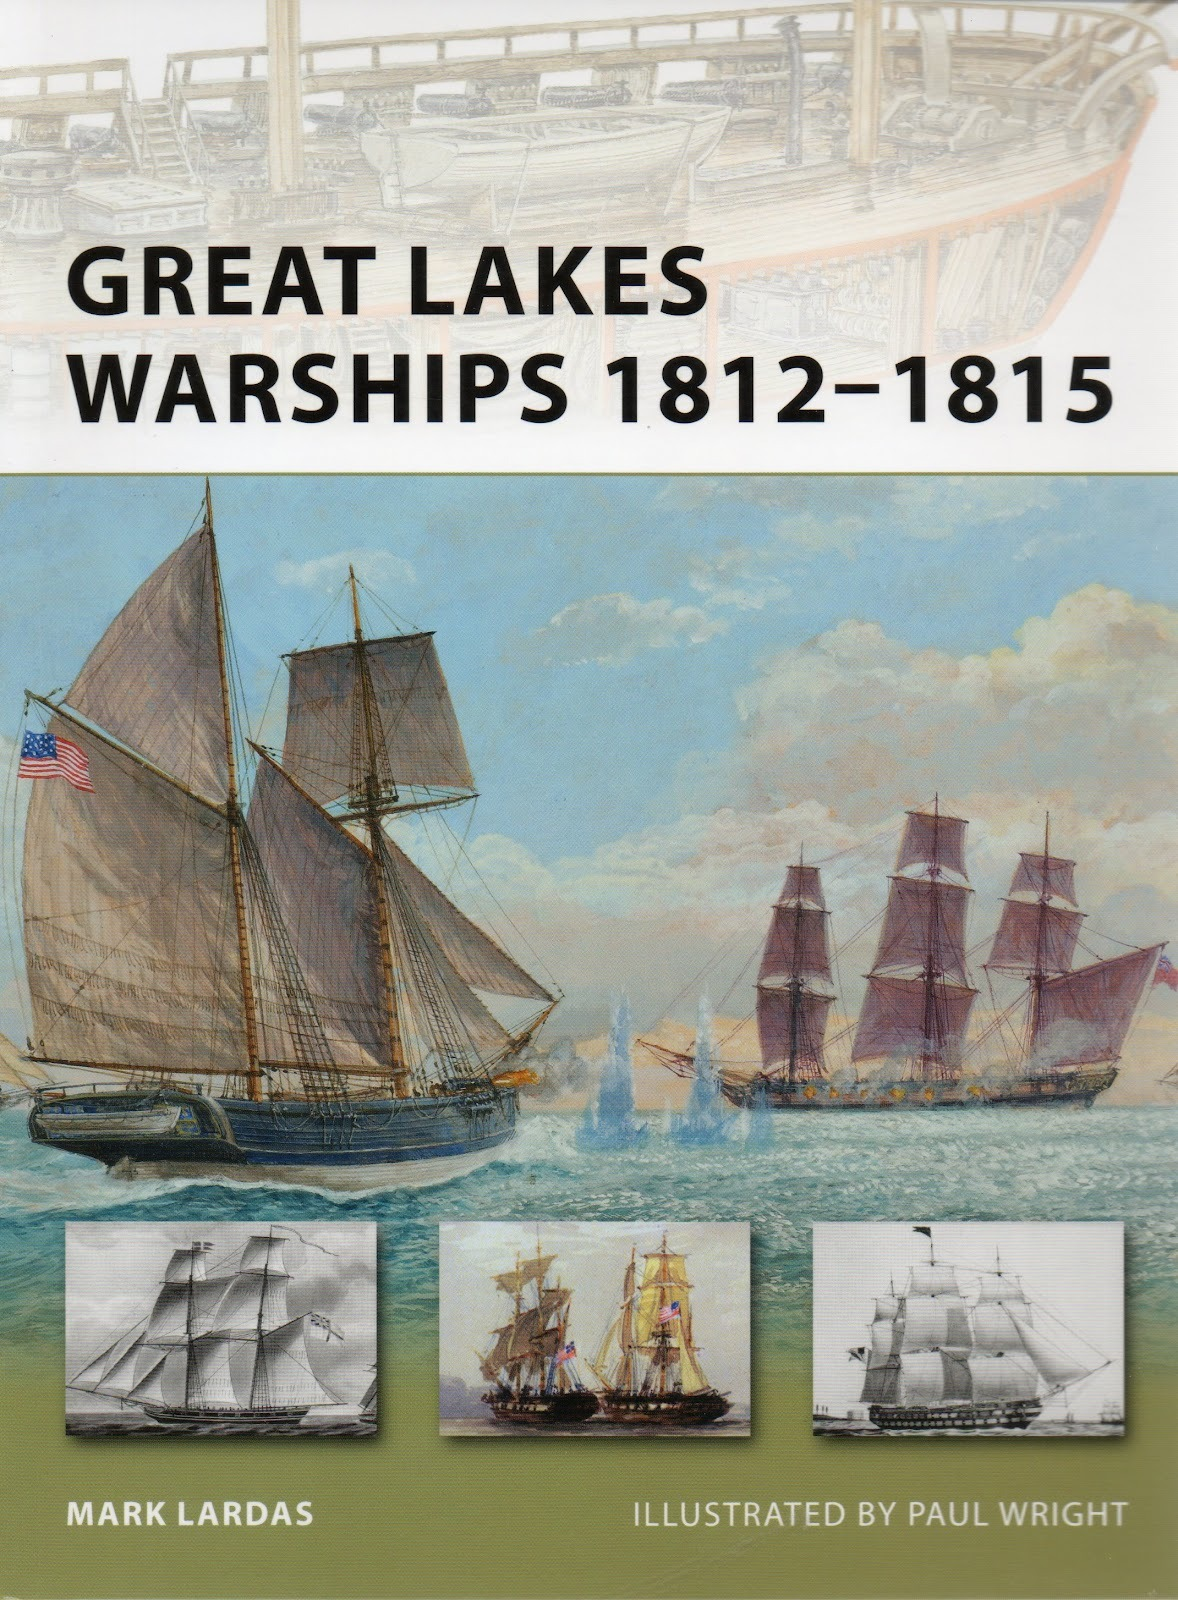 BOOK REVIEW – Great Lakes Warships, 1812-1815 By Mark Lardas, Osprey Publishing, Oxford, United Kingdom (2010) Reviewed by Diana L. Ahmad, Ph.D. For a book of only forty-eight pages, this publication provides an excellent overview of the Great Lakes ships of the War of 1812. An amateur historian, the author, Mark Lardas, trained as a Naval Architecture and Marine Engineer, but worked at the Johnson Space Center for a time. Lardas devotes as much time to describing the vessels as he does to explaining the battles in which the ships participated. (read the full review)